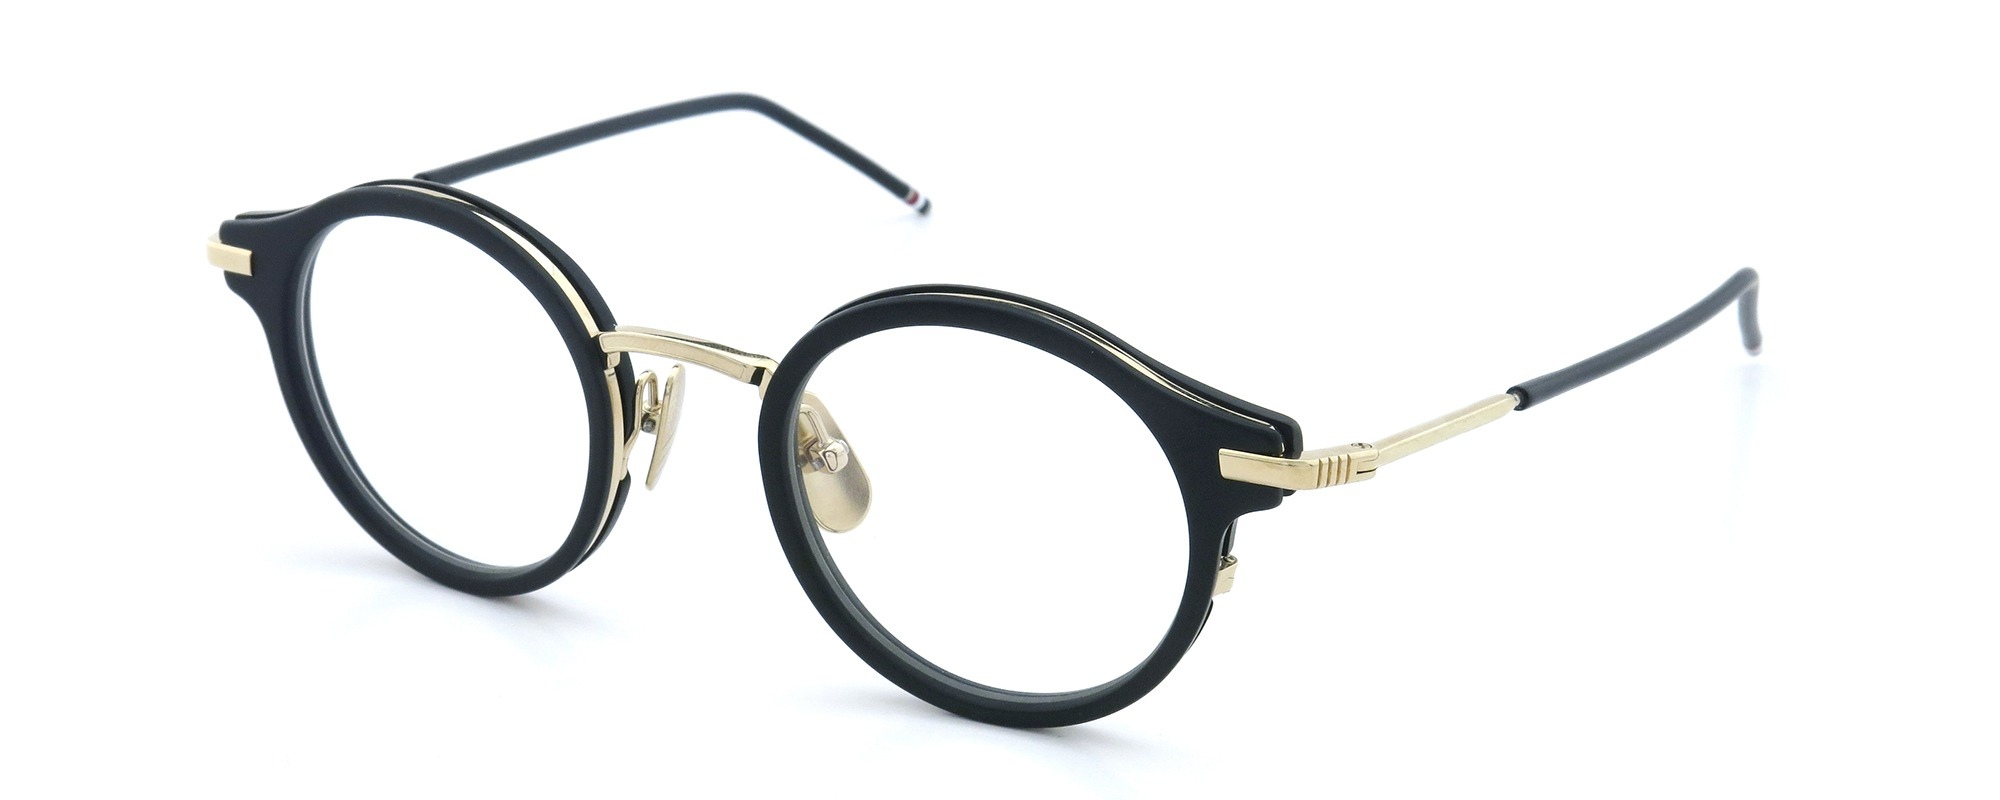 THOM BROWNE. TB-807-A BLK-12KGLD 45size